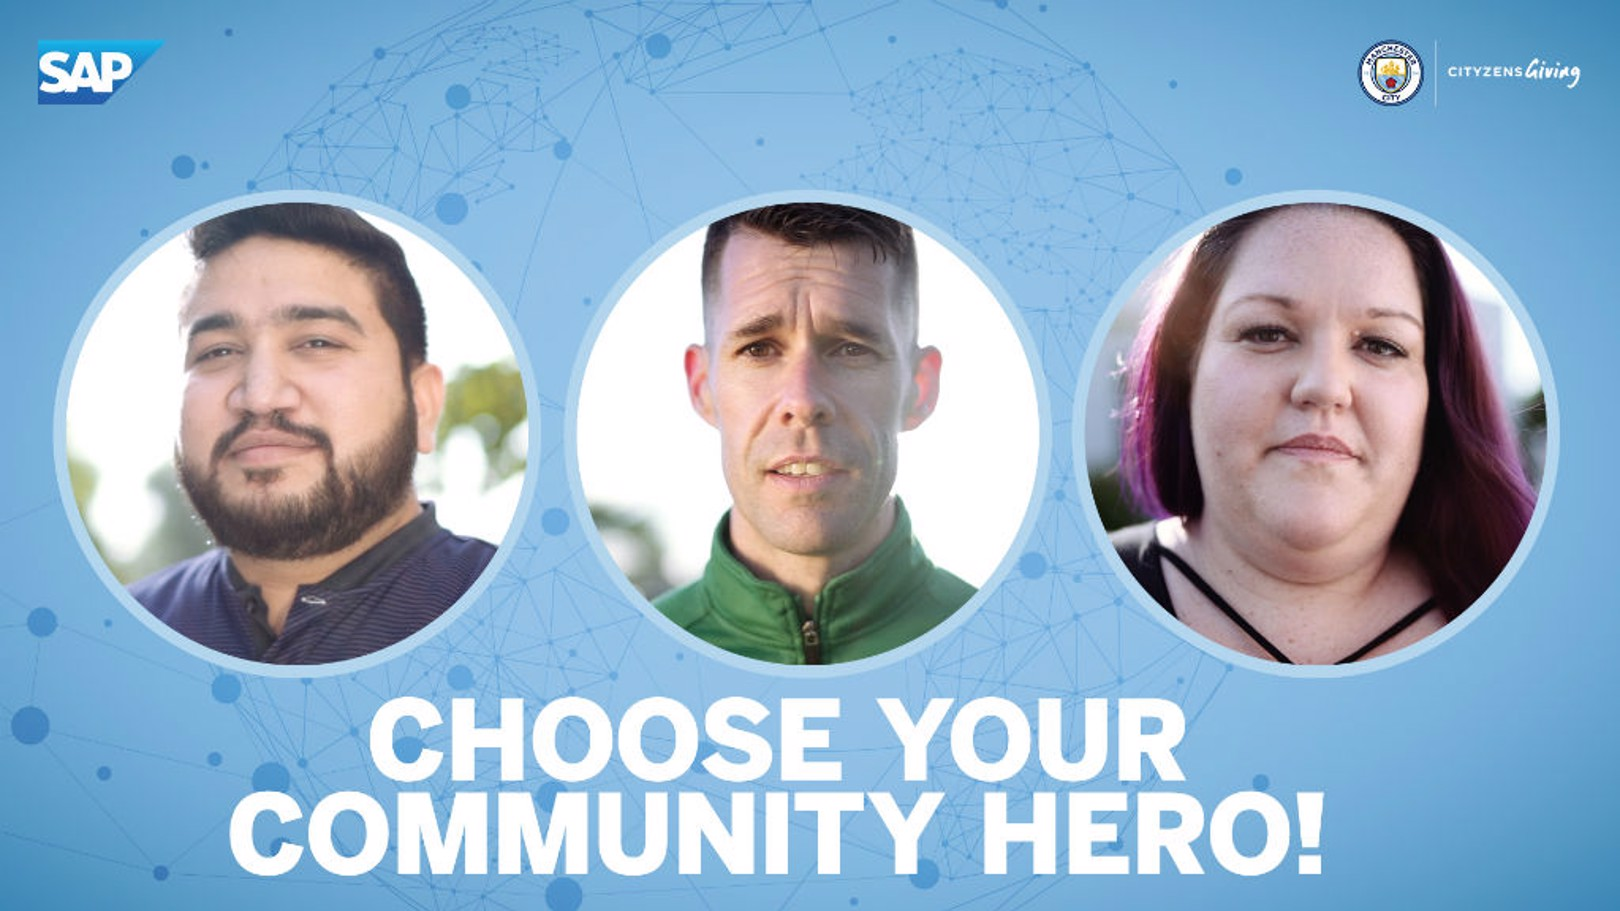 Choose your SAP Manchester City Community Hero!